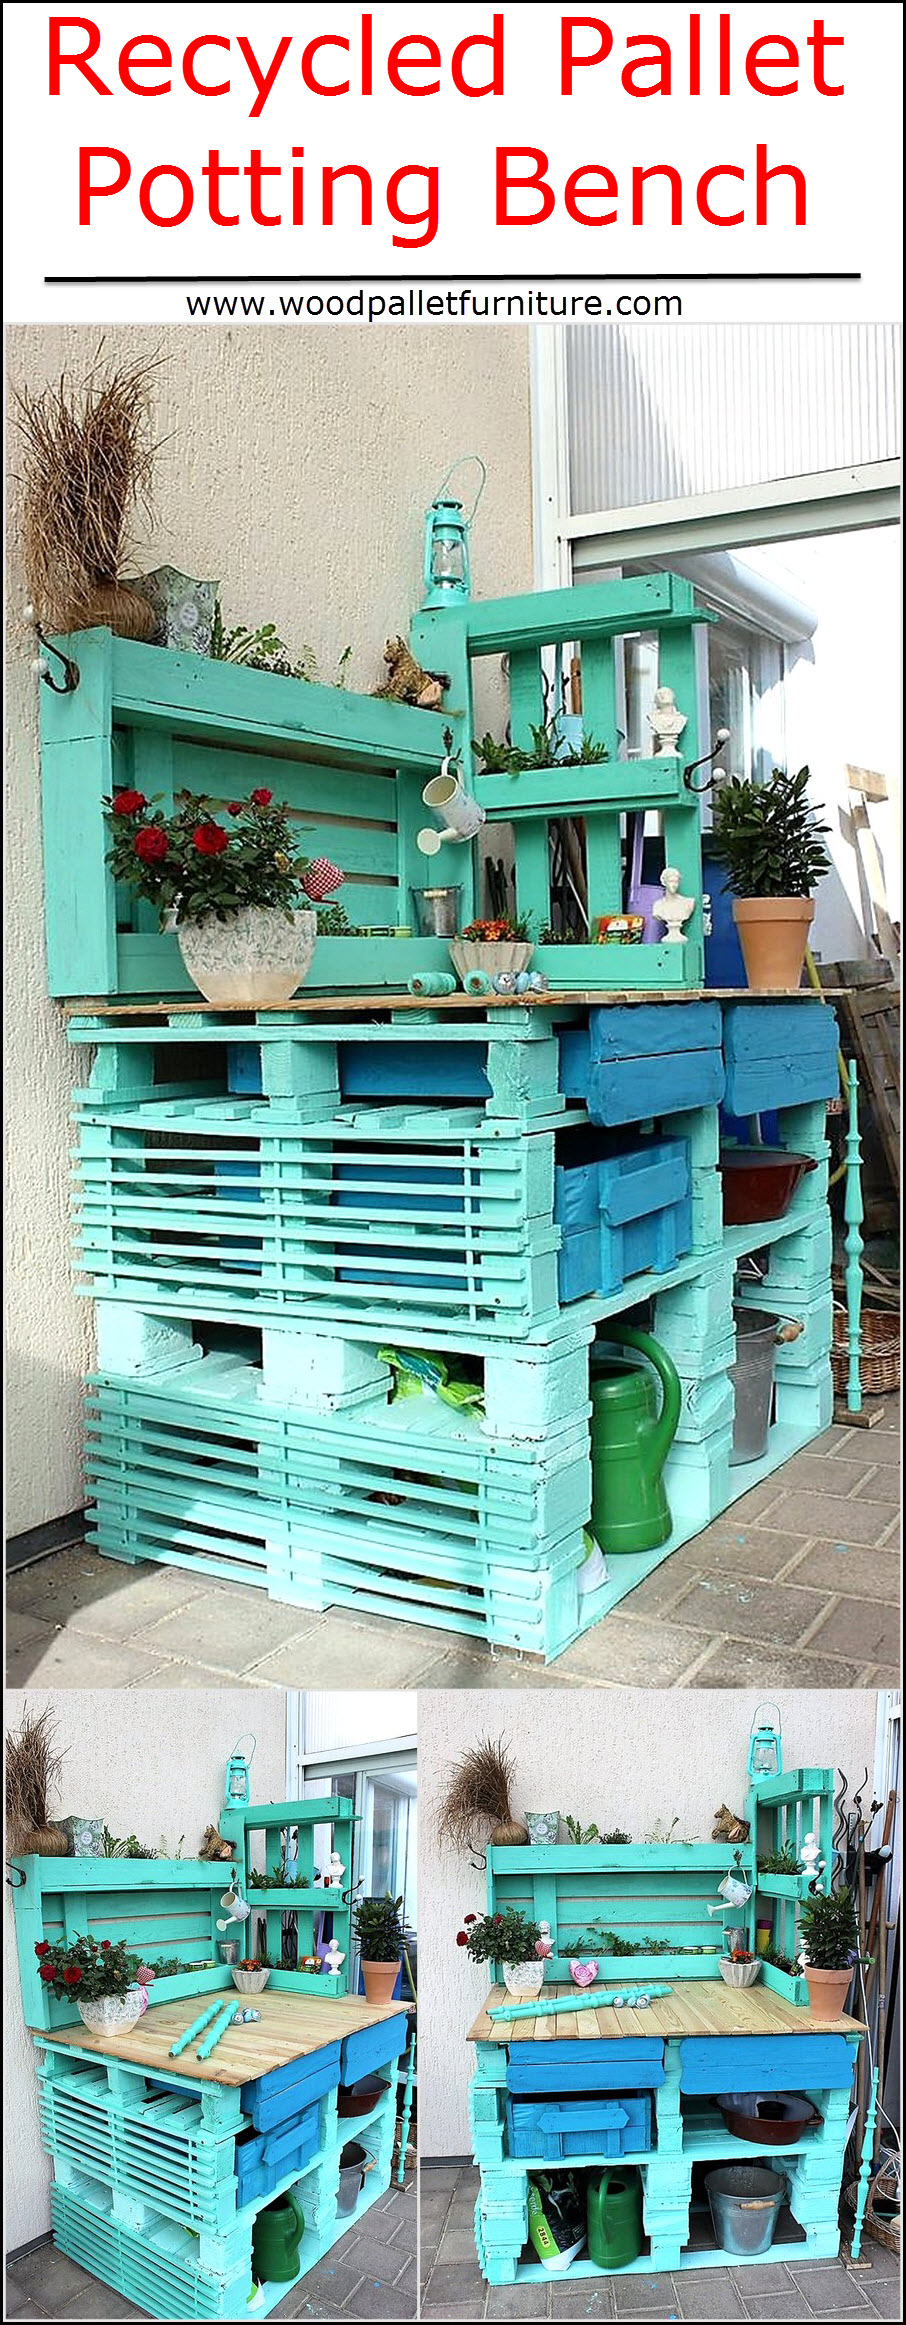 recycled-pallet-potting-bench